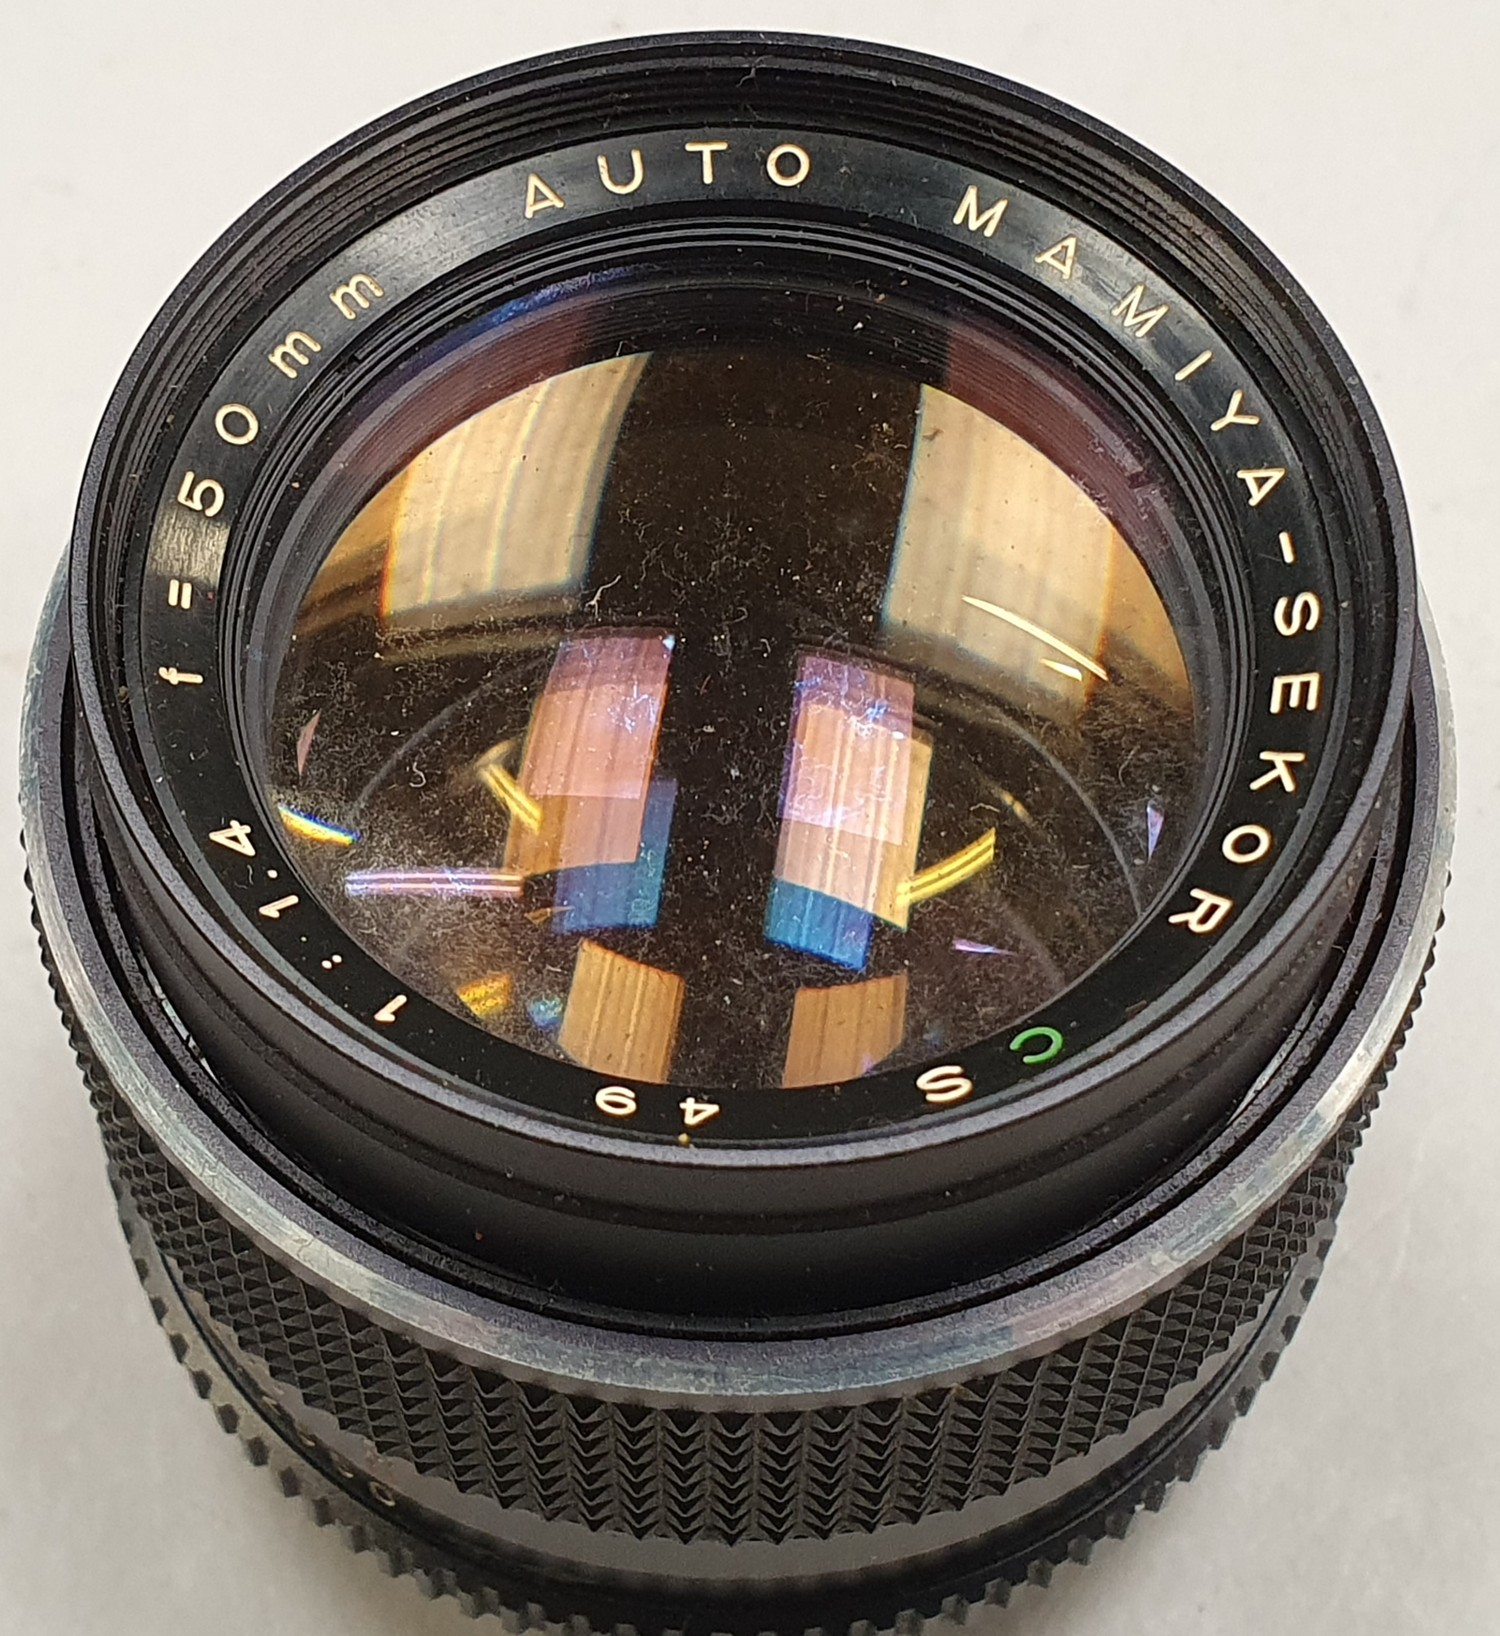 A collection of camera lenses to include Optomax, Nikon etc. - Image 6 of 9